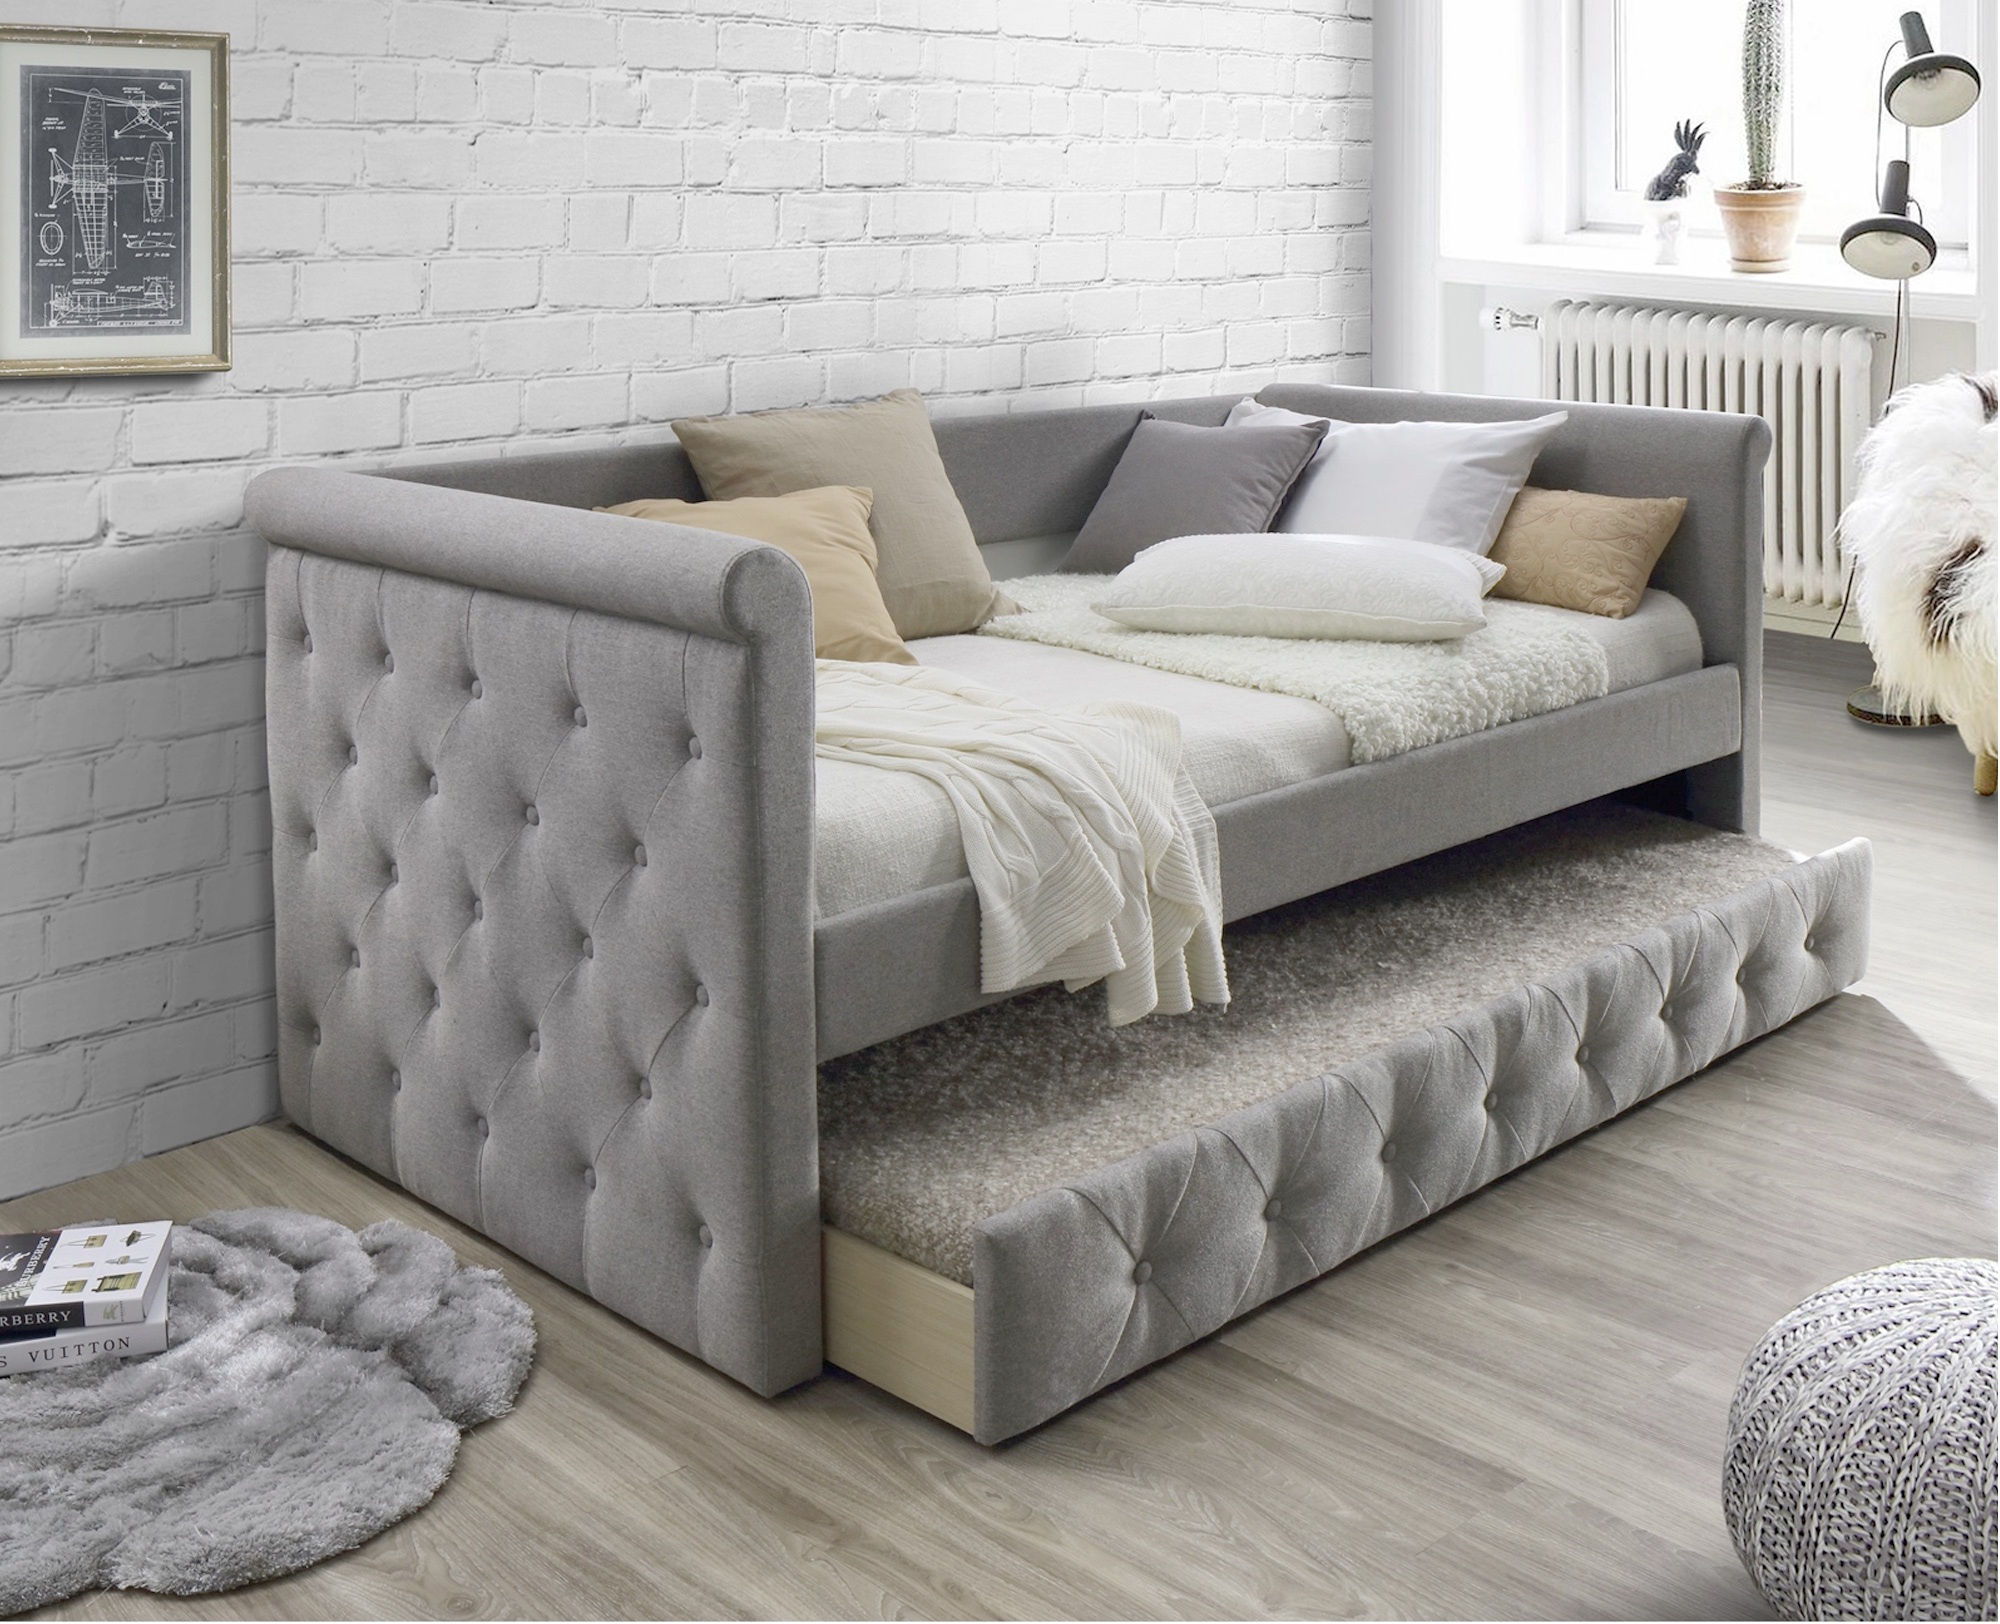 NEW Arles Single Sofa Daybed with Trundle   VIC Furniture ...